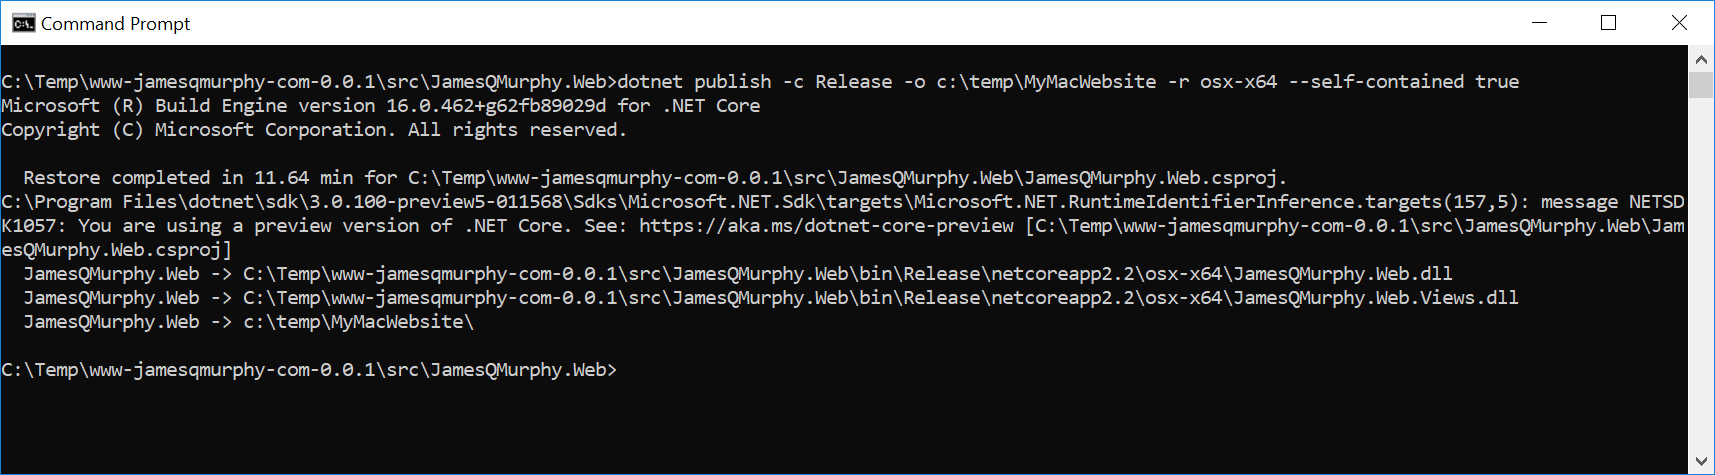 running dotnet publish targetting osx-x64 and taking 11 minutes